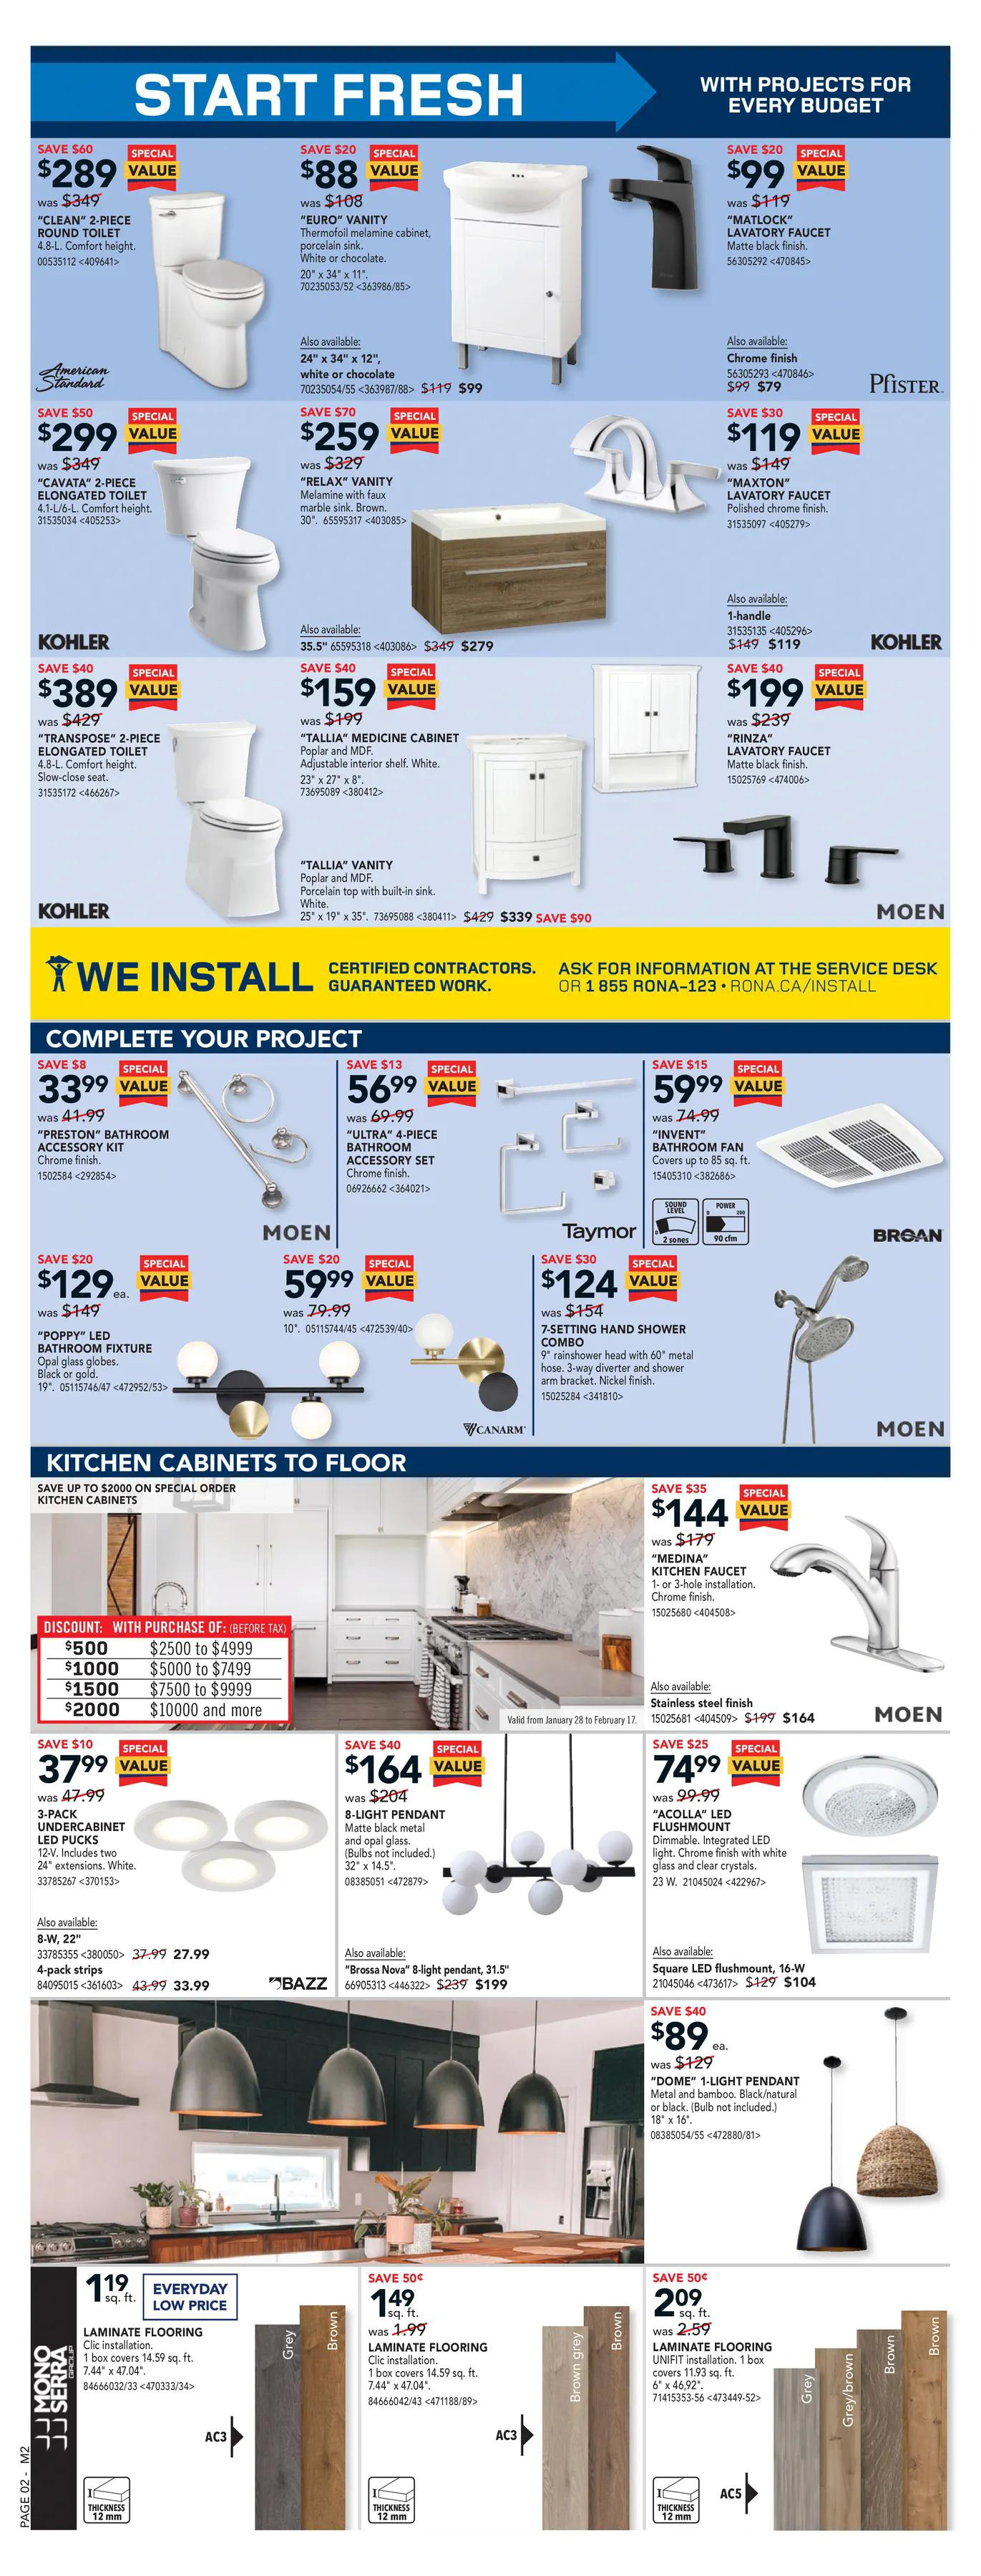 Rona - Weekly Flyer Specials - Page 2